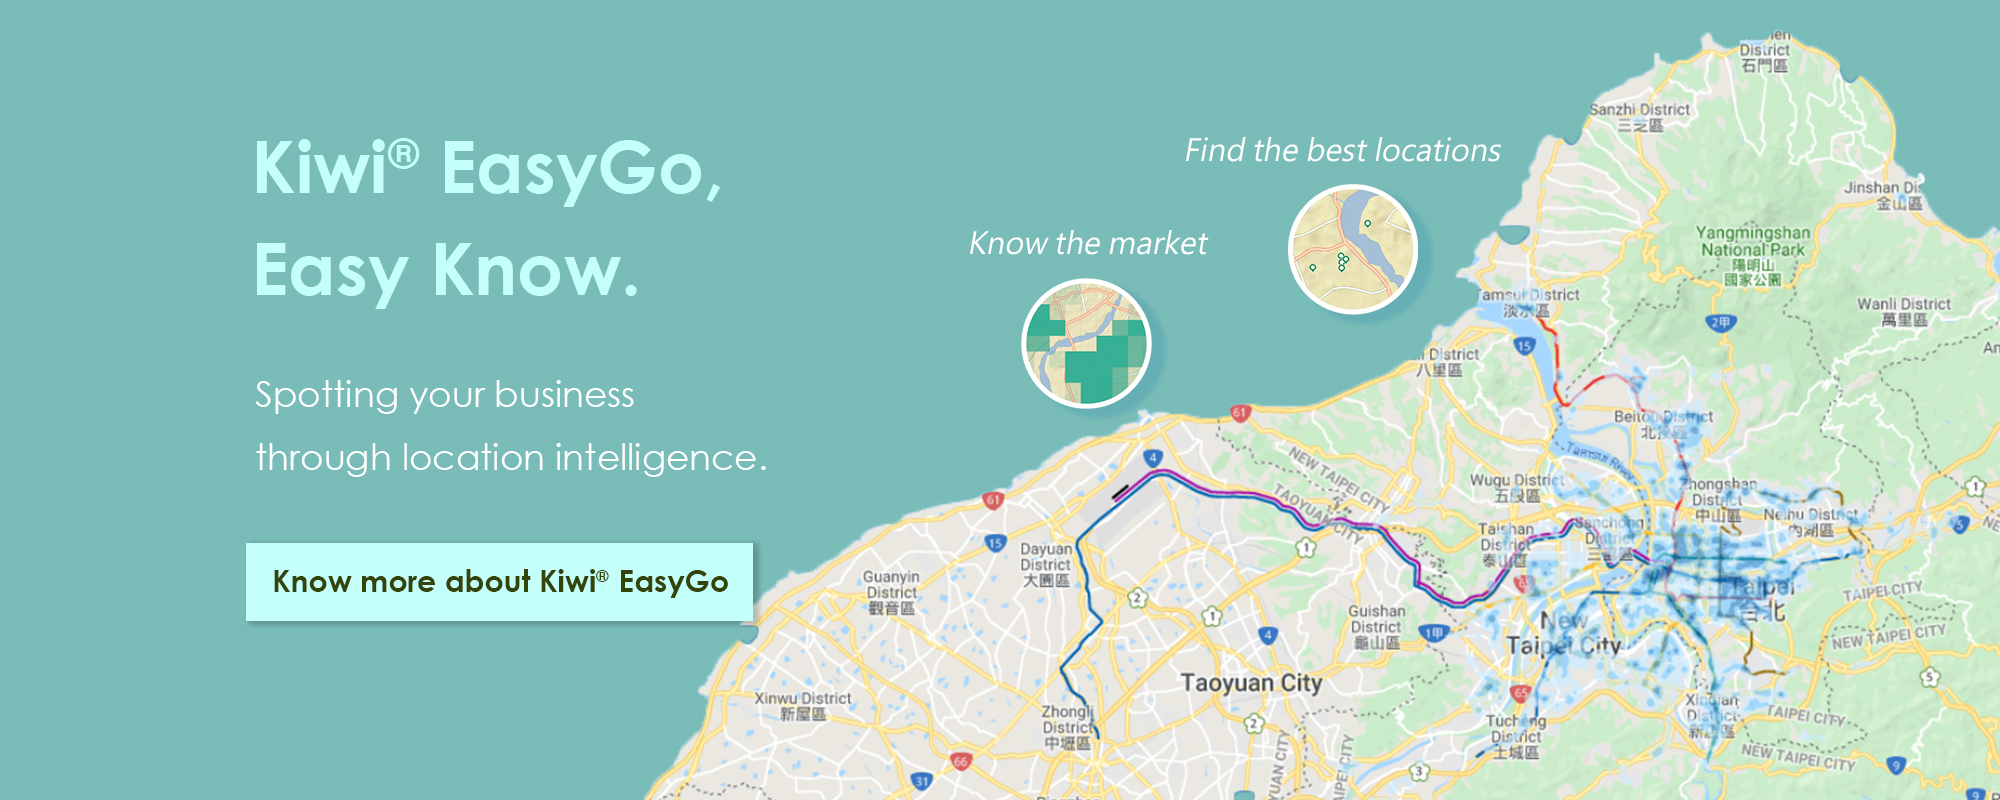 easygo-landing-page-2_engre